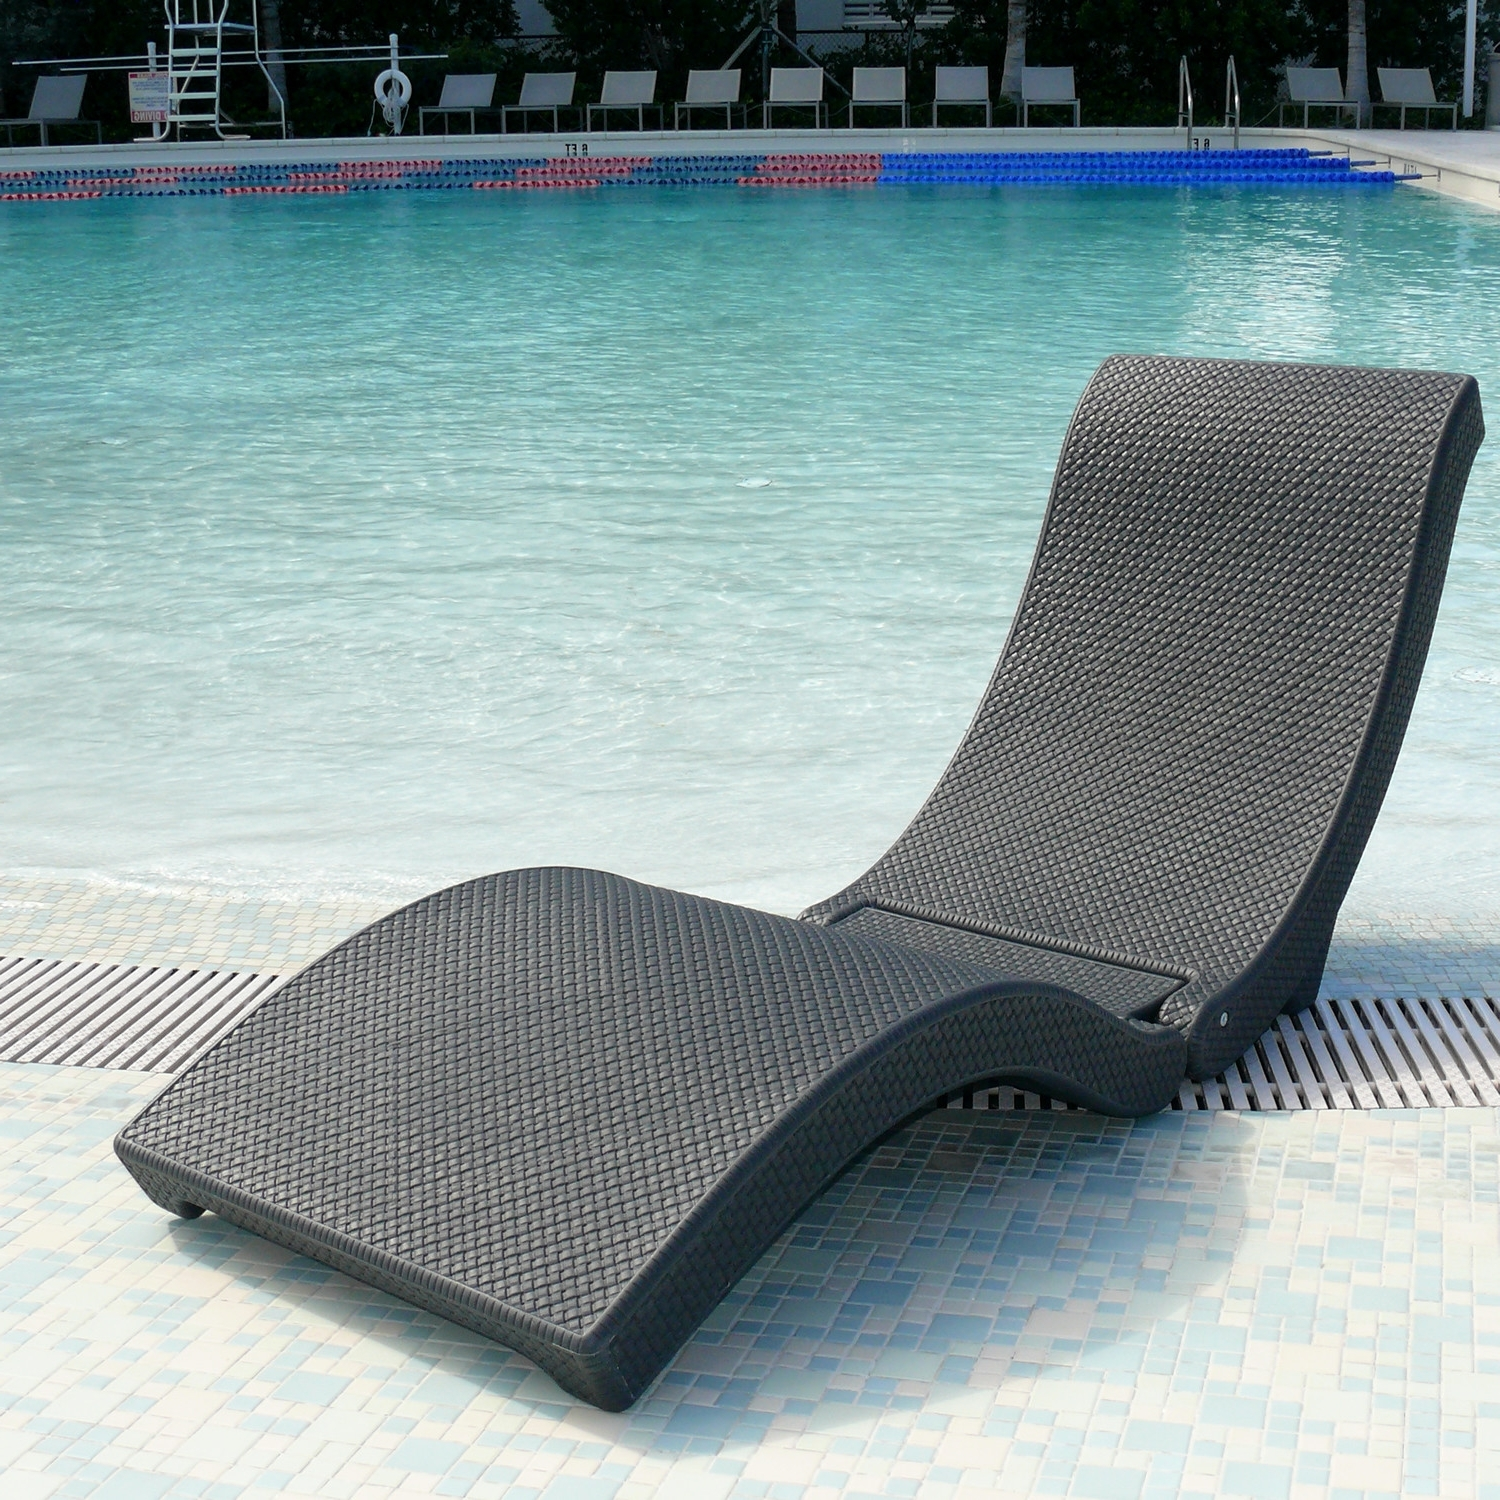 Famous Lounge Chair : Pvc Pool Lounge Chairs Garden Furniture Chaise Inside Pvc Chaise Lounges (View 4 of 15)